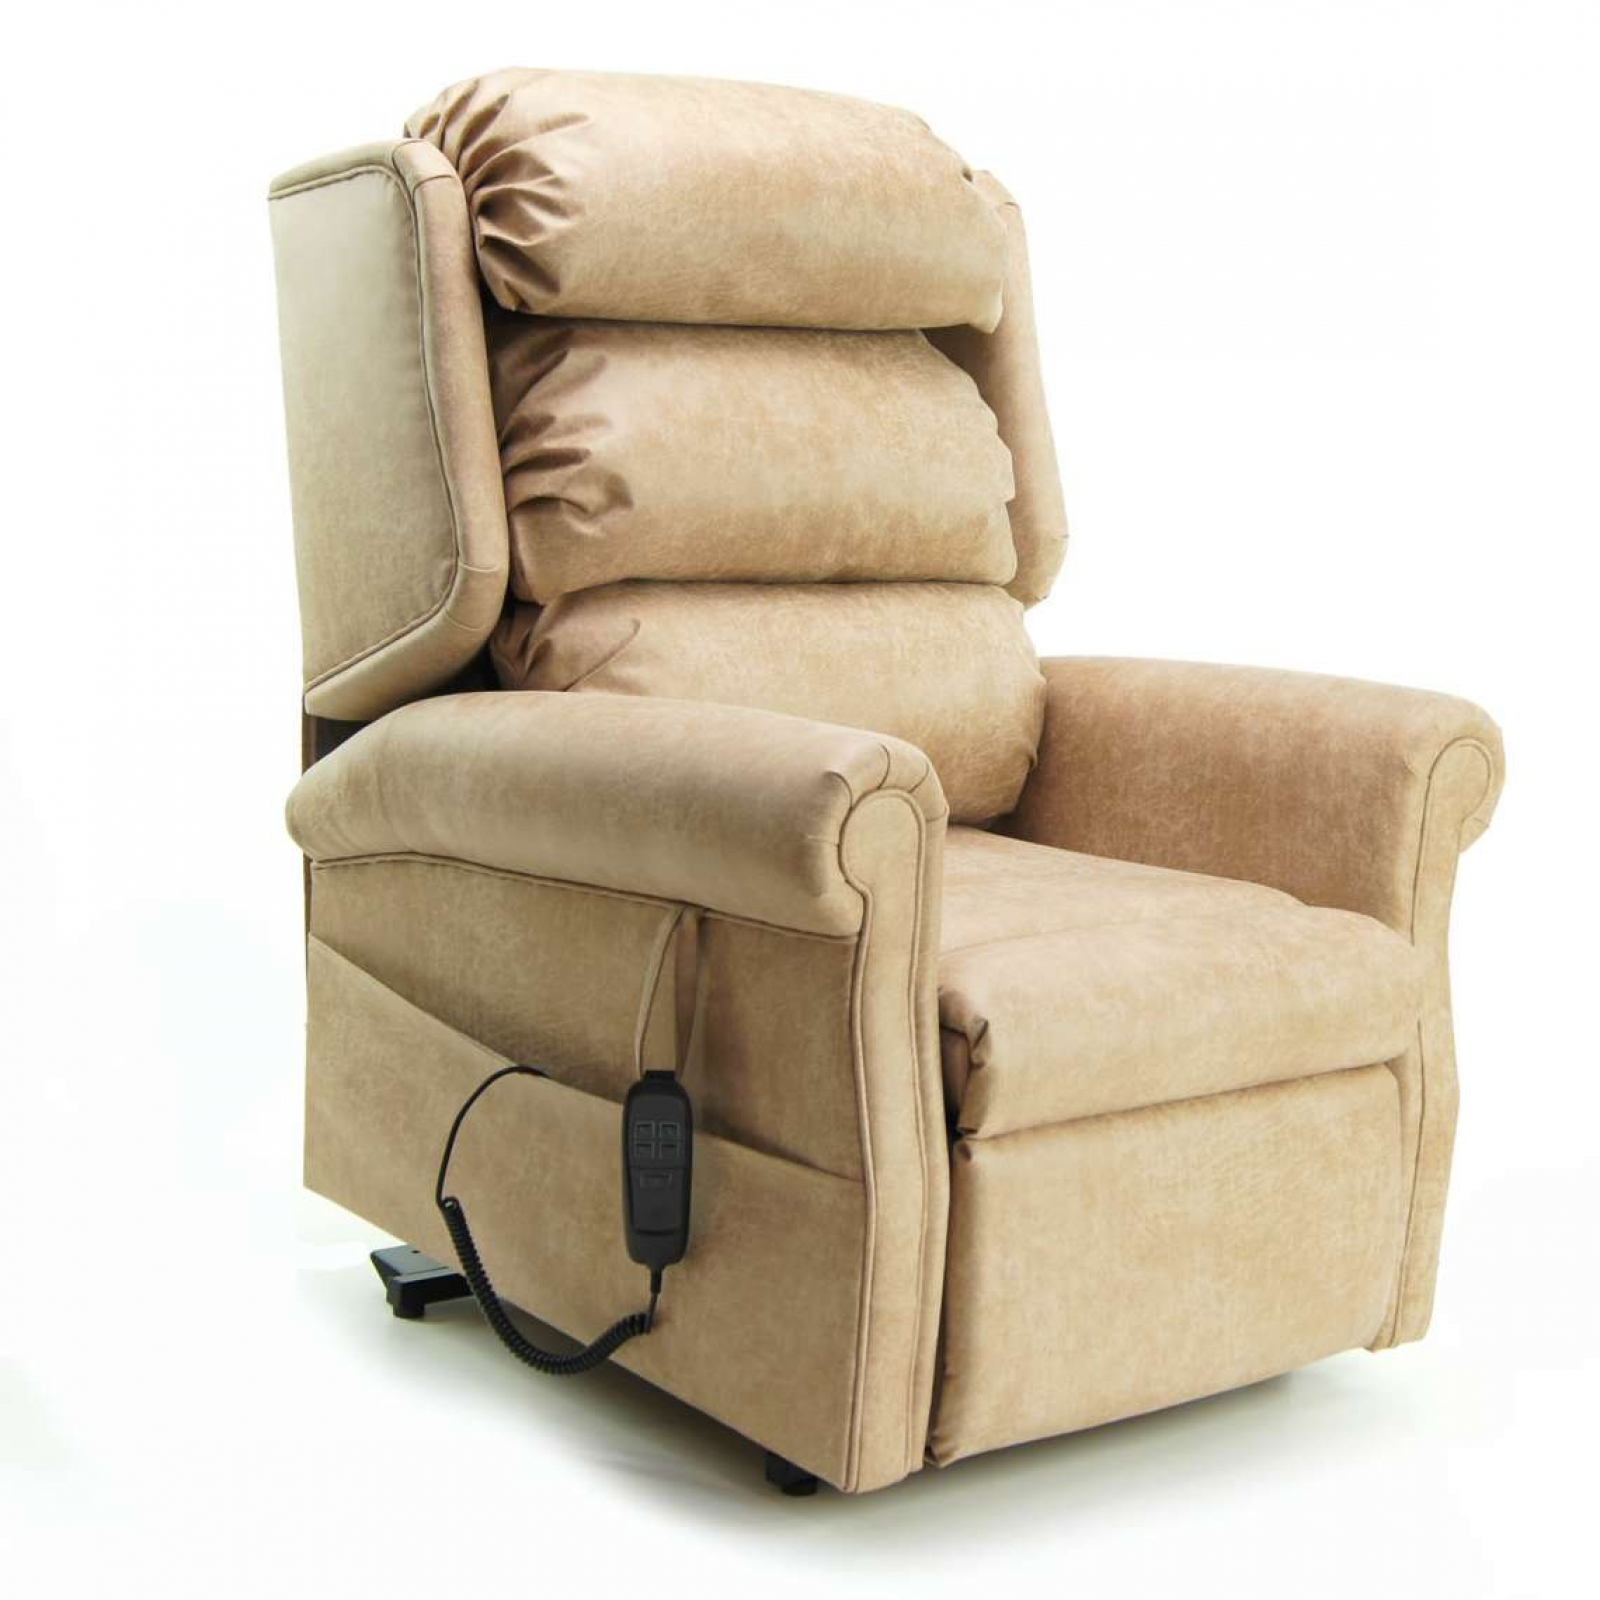 Hire Quality Rise & Recline Chairs Hampshire | How It Works